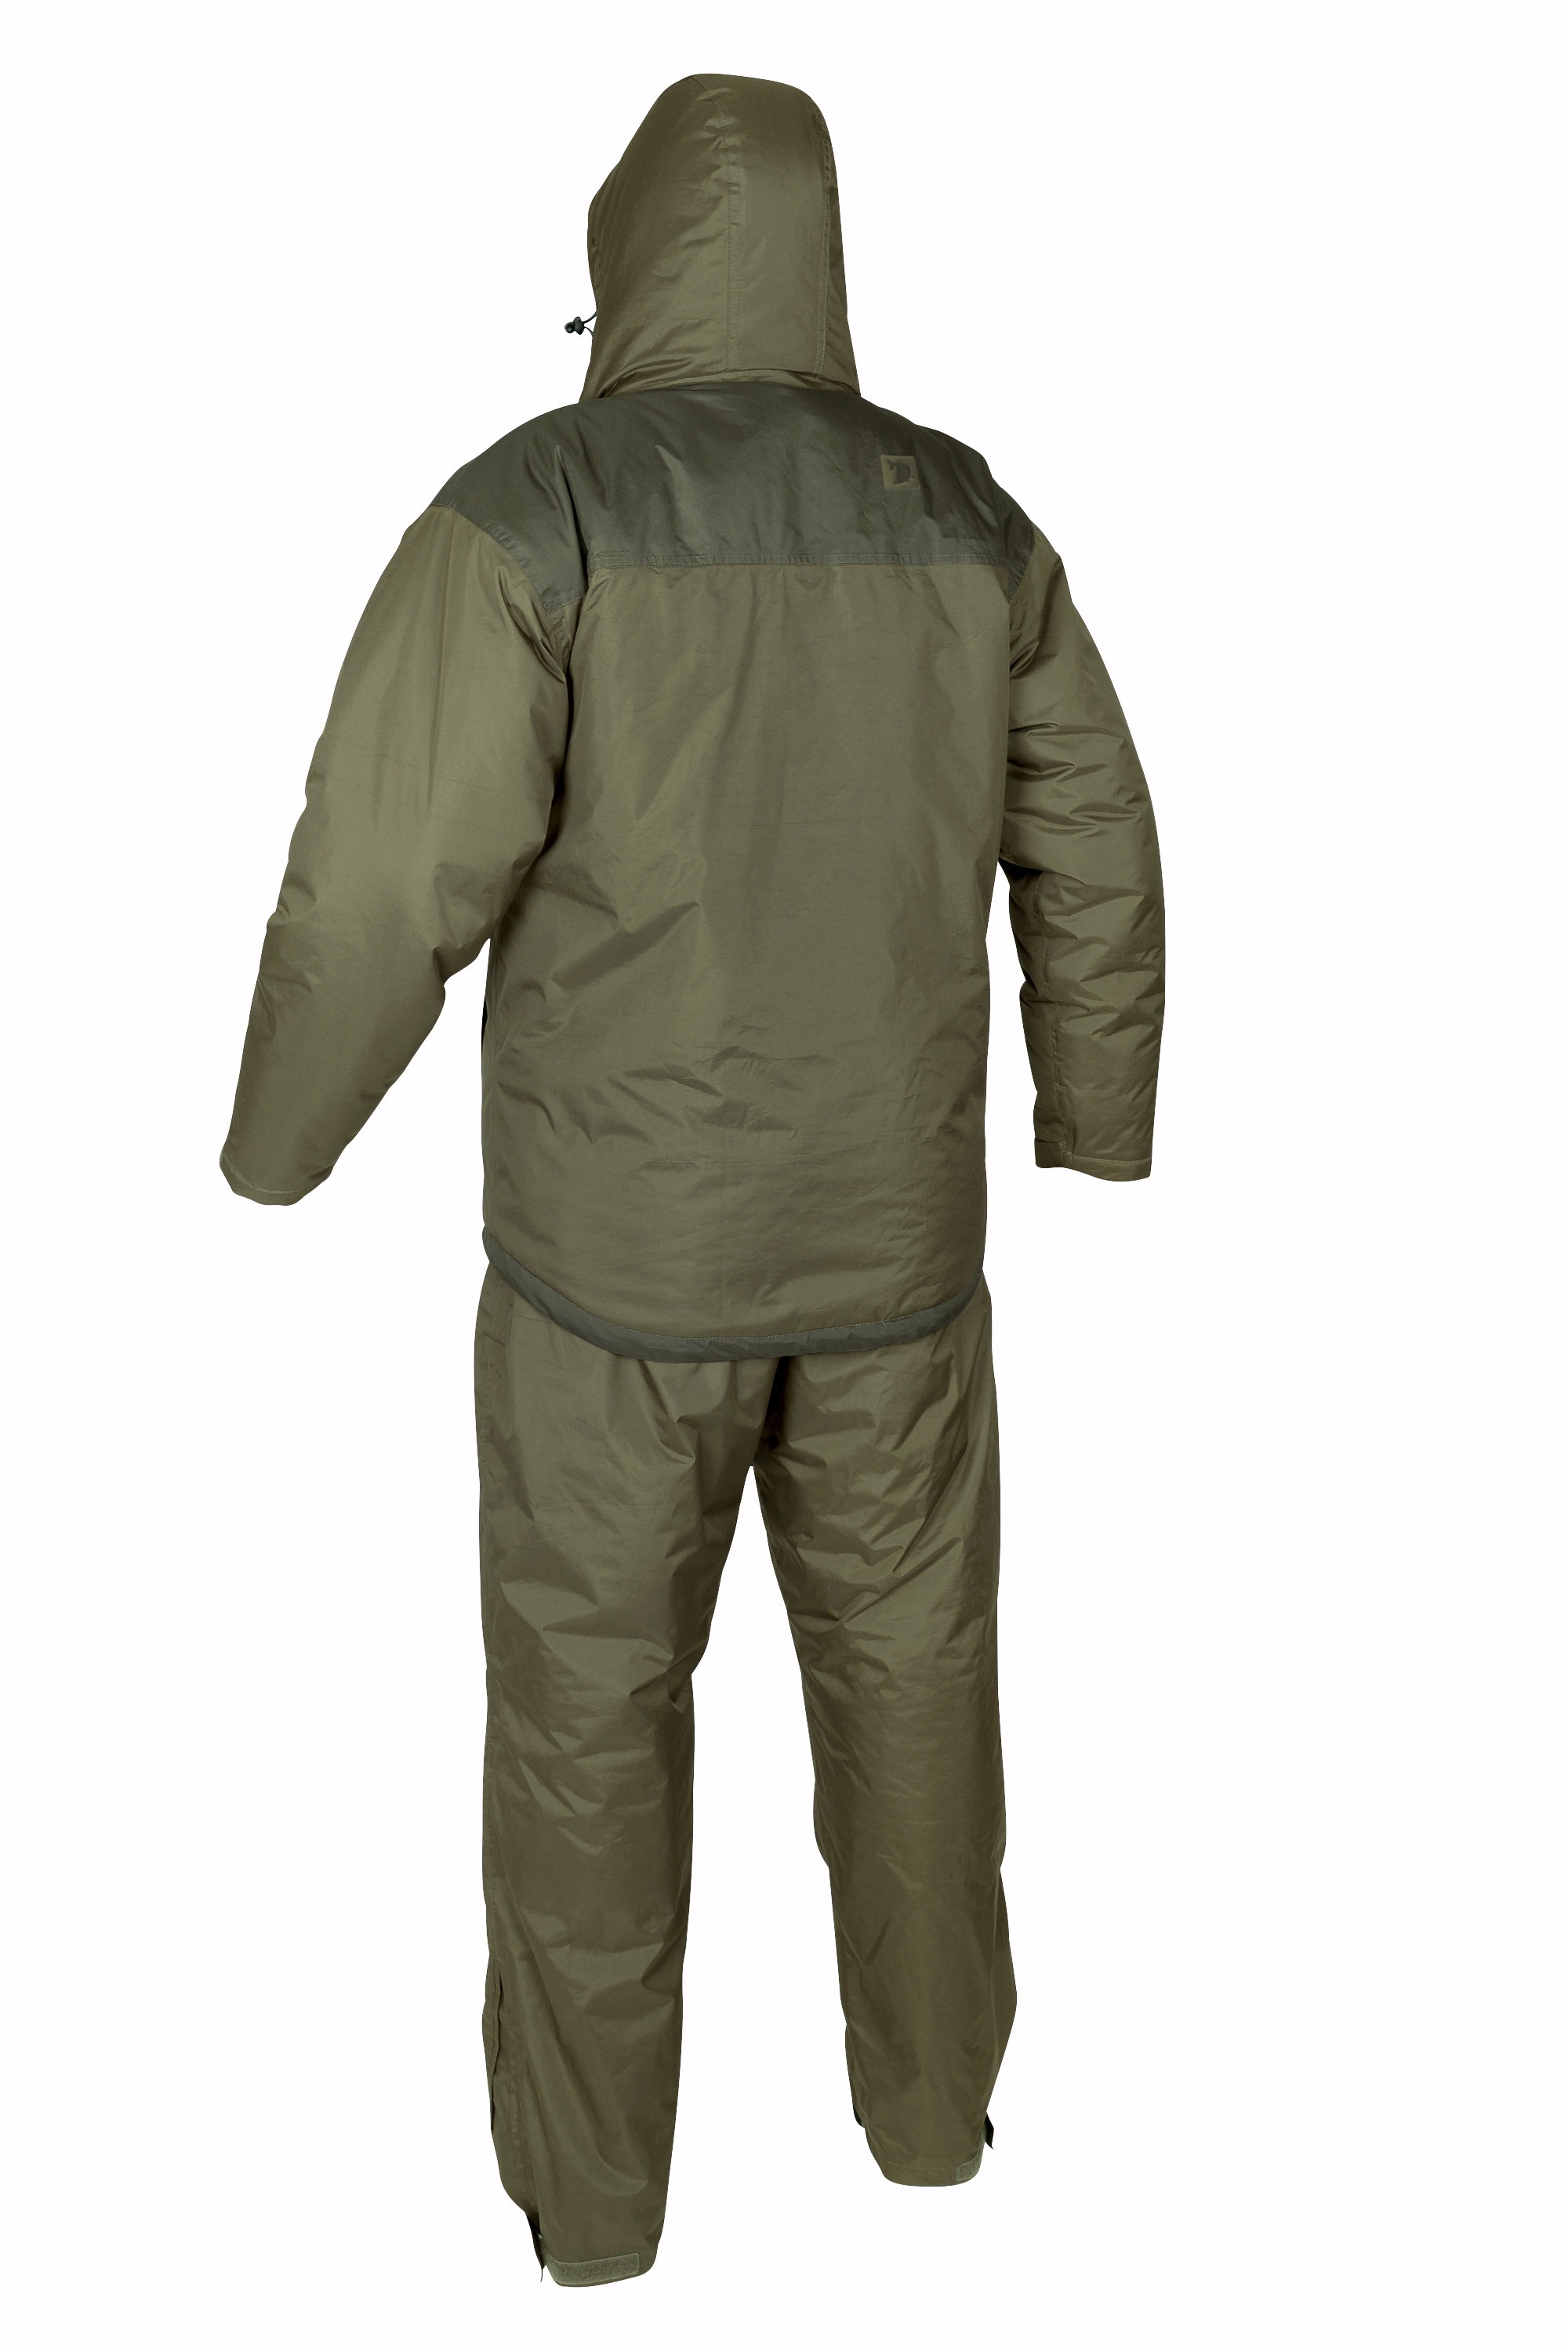 STRATEGY- 3 in 1 Thermal Suit